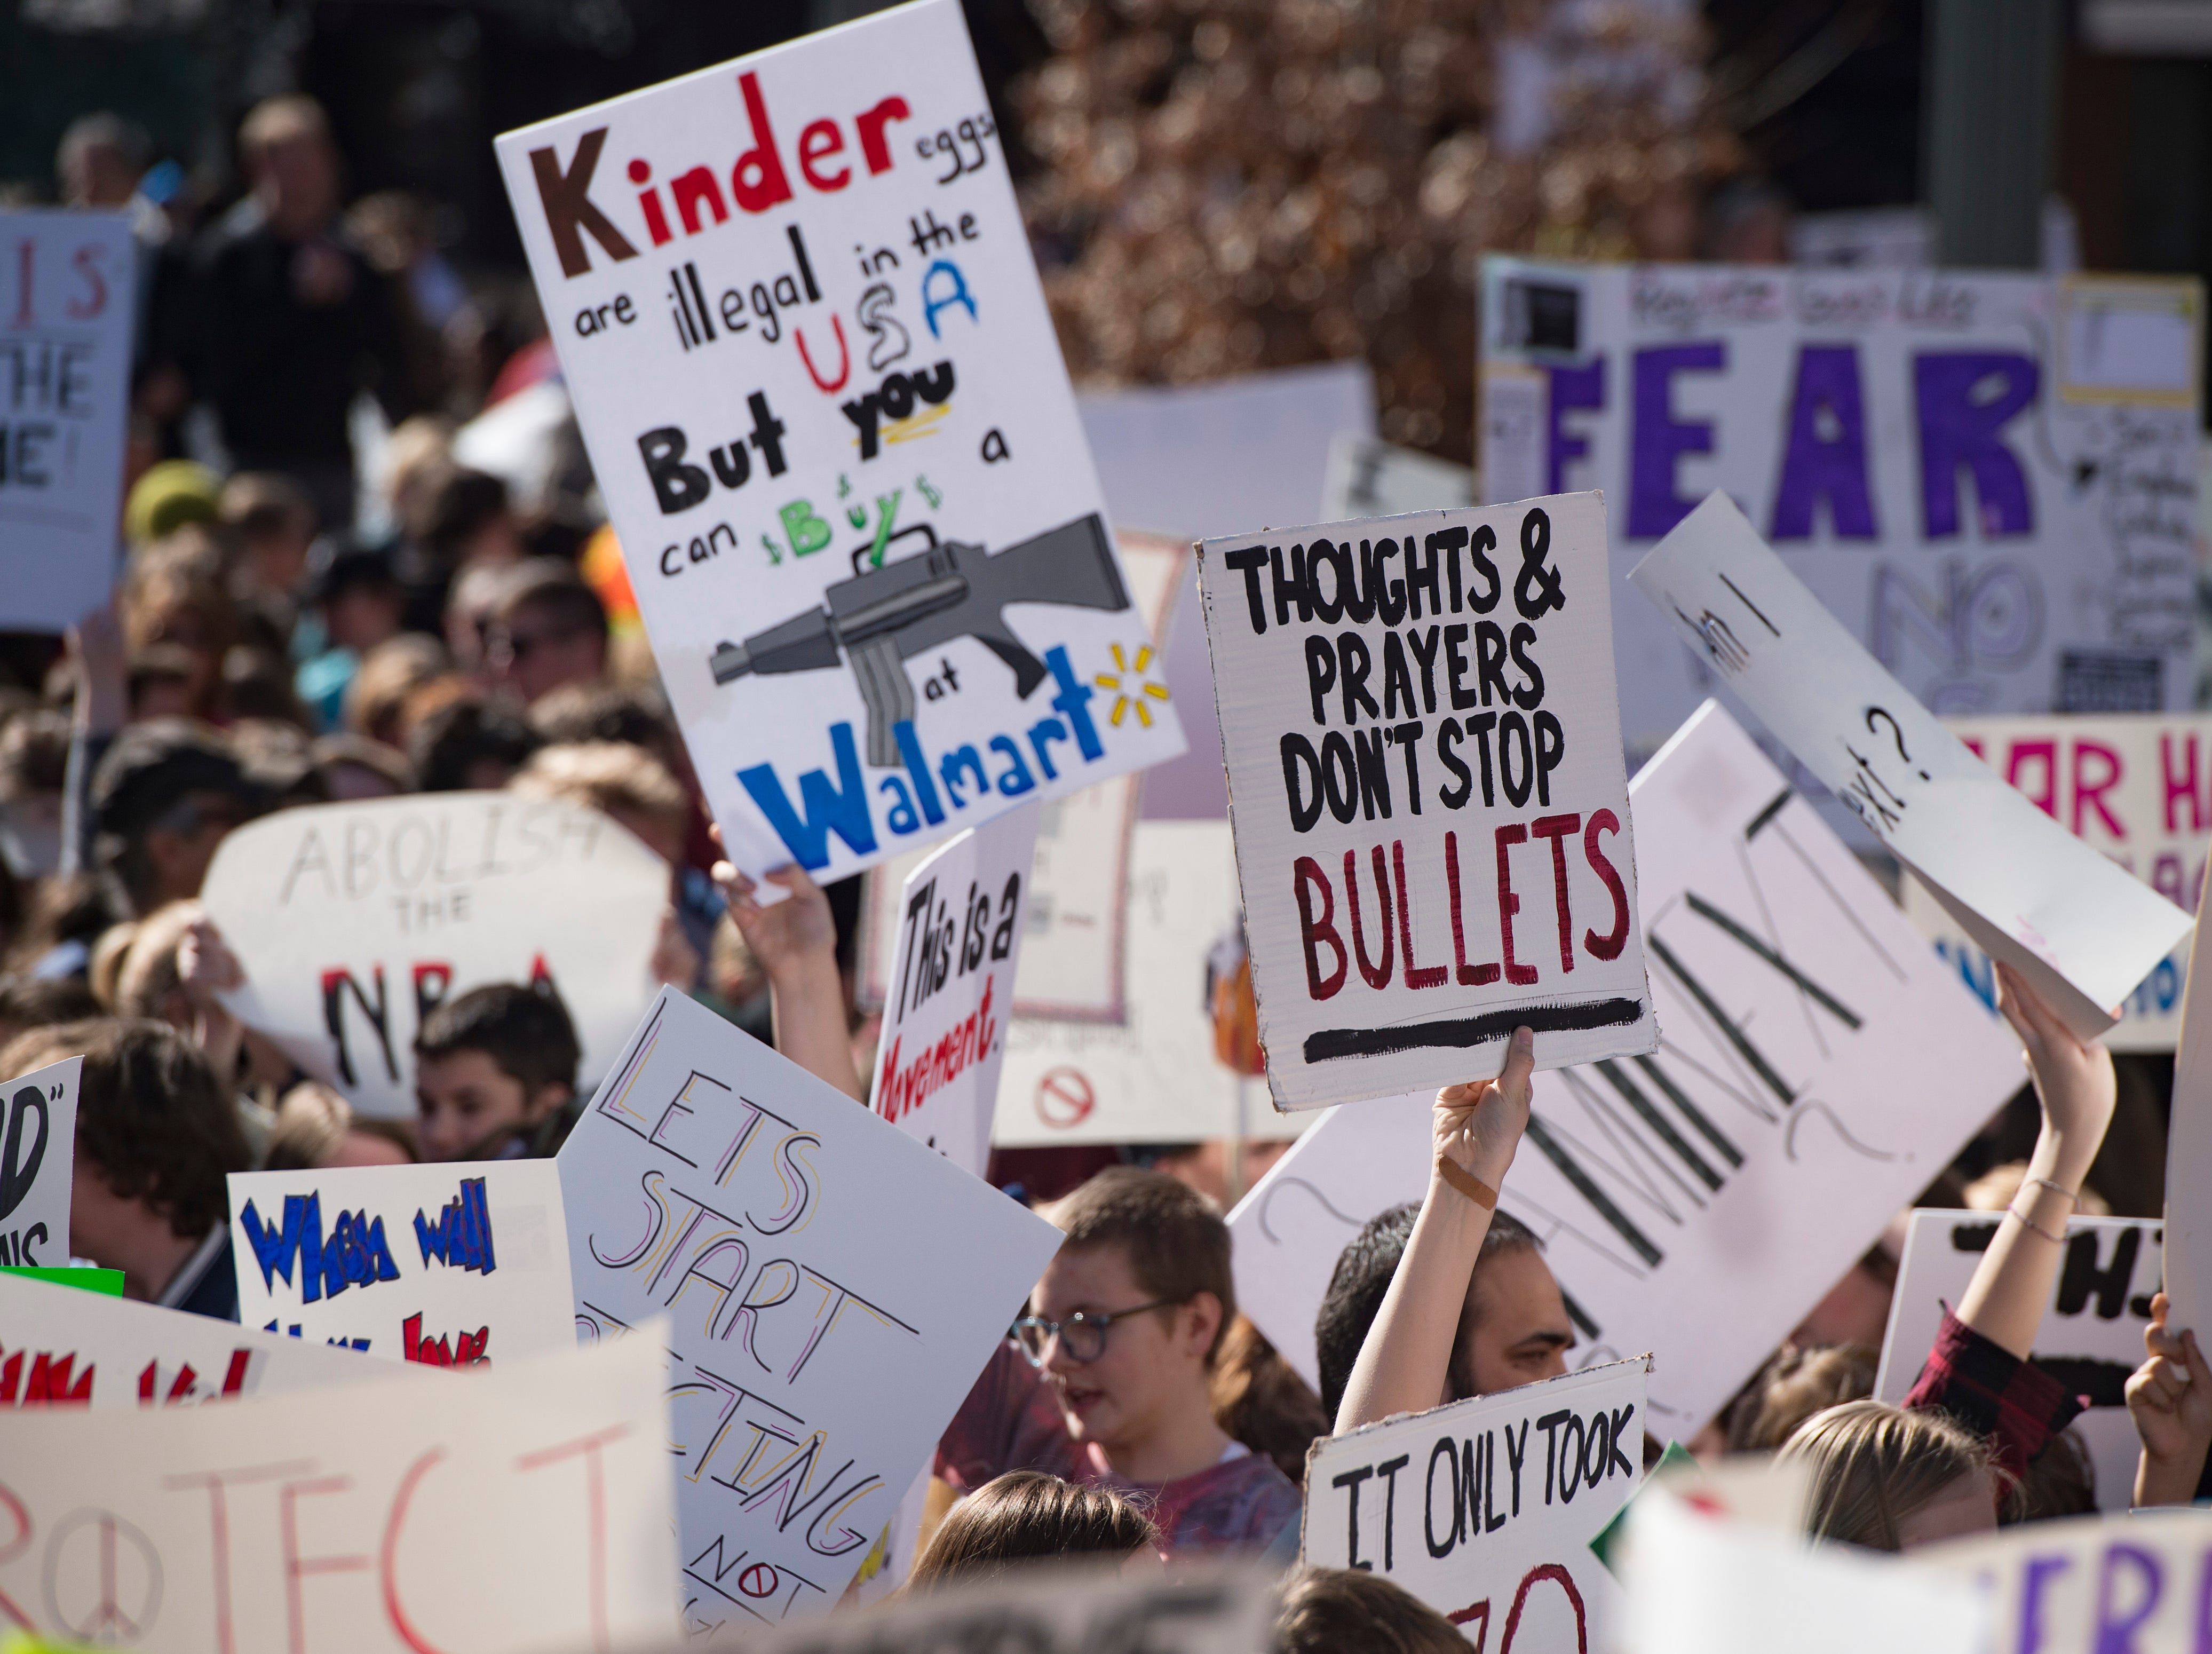 Fort Collins students and supporters crowd Old Town Square during a rally voicing concerns about school safety on Tuesday, February 27, 2018.